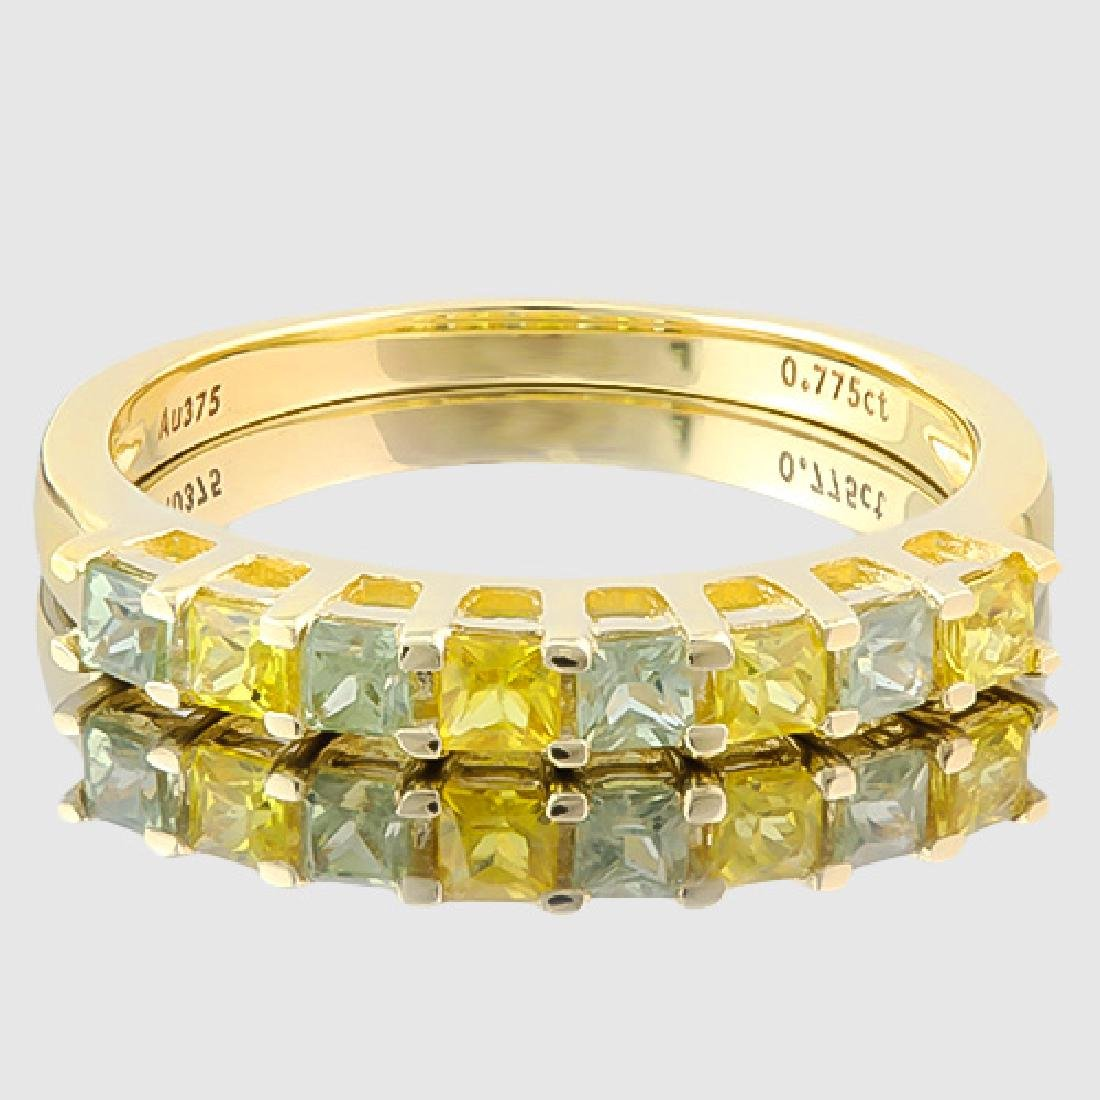 4/5 CARAT (8 PCS) SAPPHIRE (VS) 9KT SOLID GOLD BAND RIN